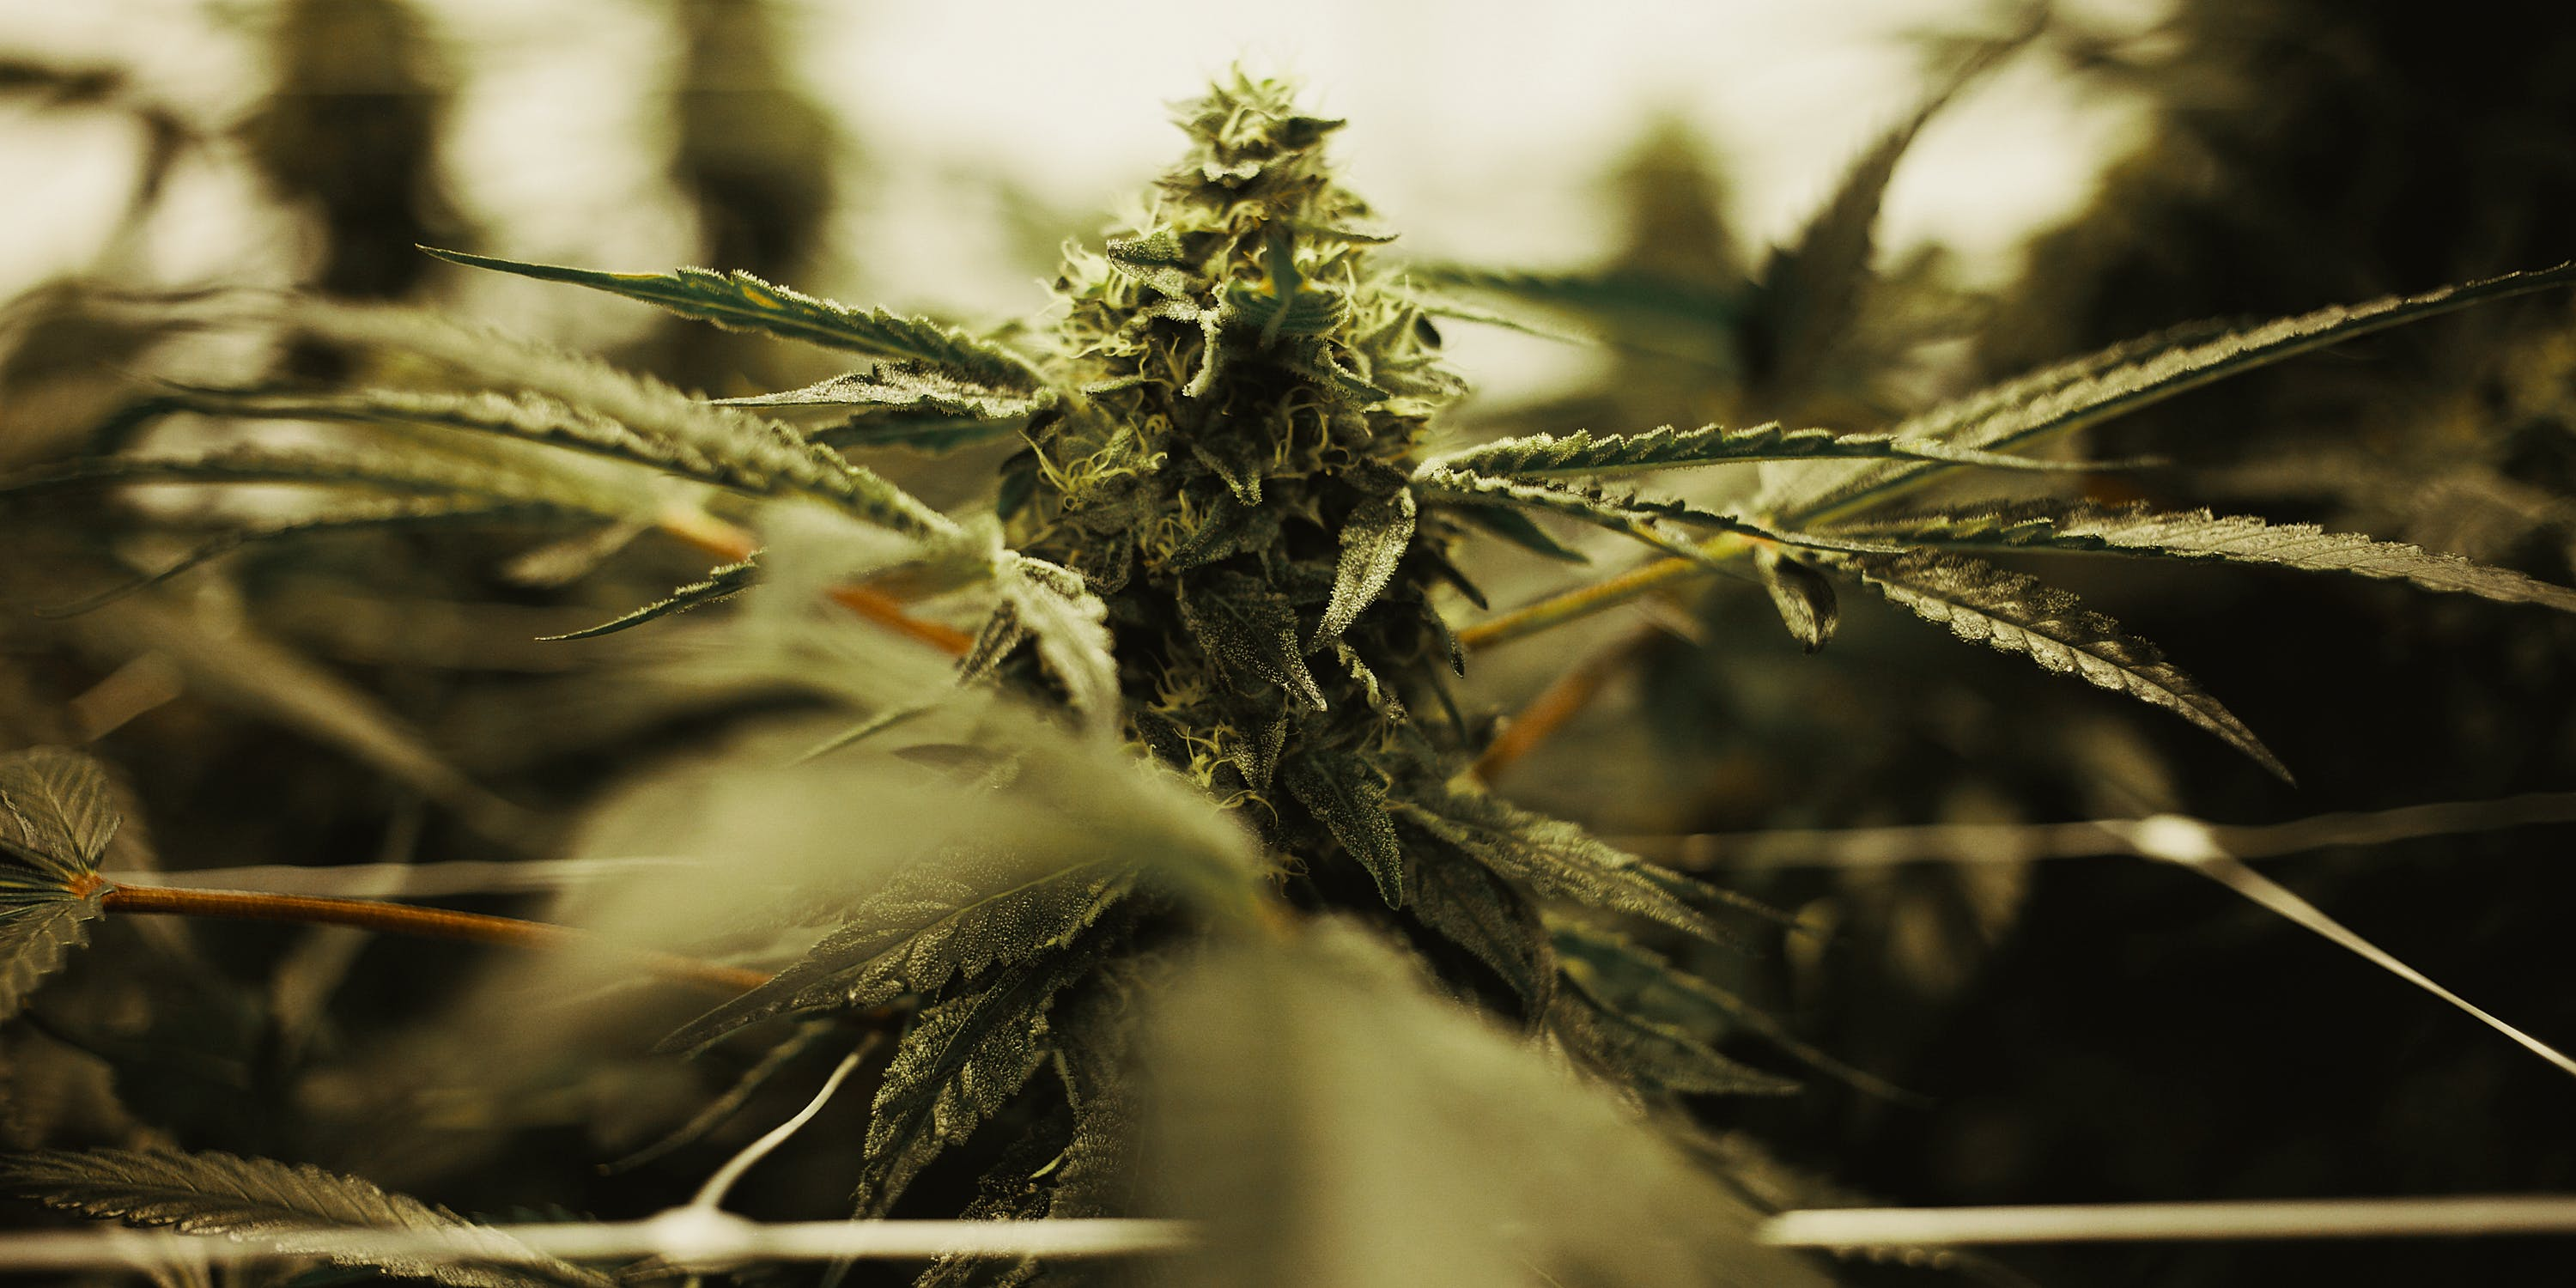 Growing Indoor vs. Outdoor Weed: What's the Difference? Here, a plant is shown close up